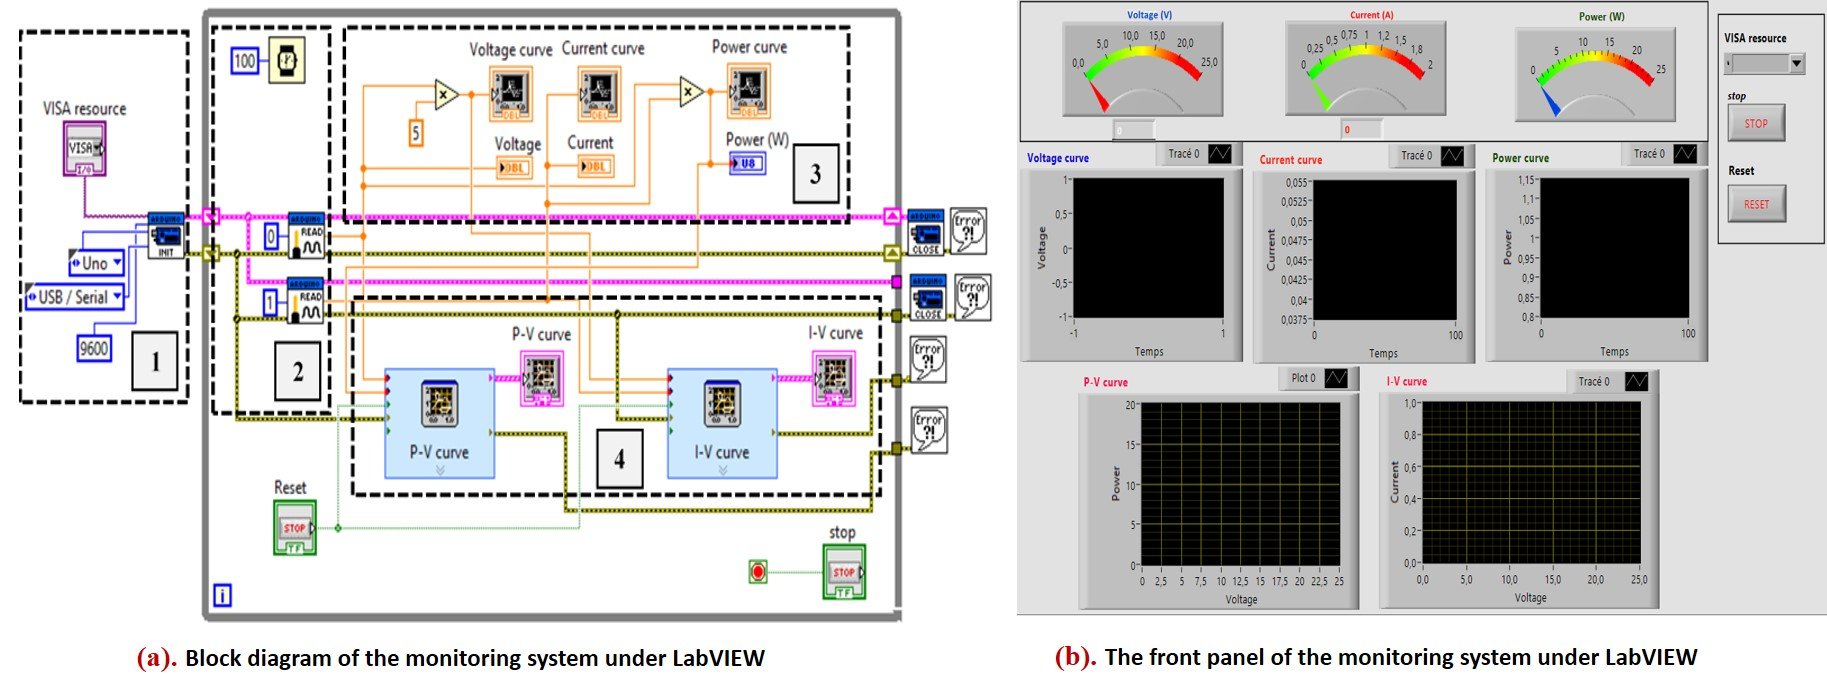 Labview block diagram and fron panel edhe61rhuo